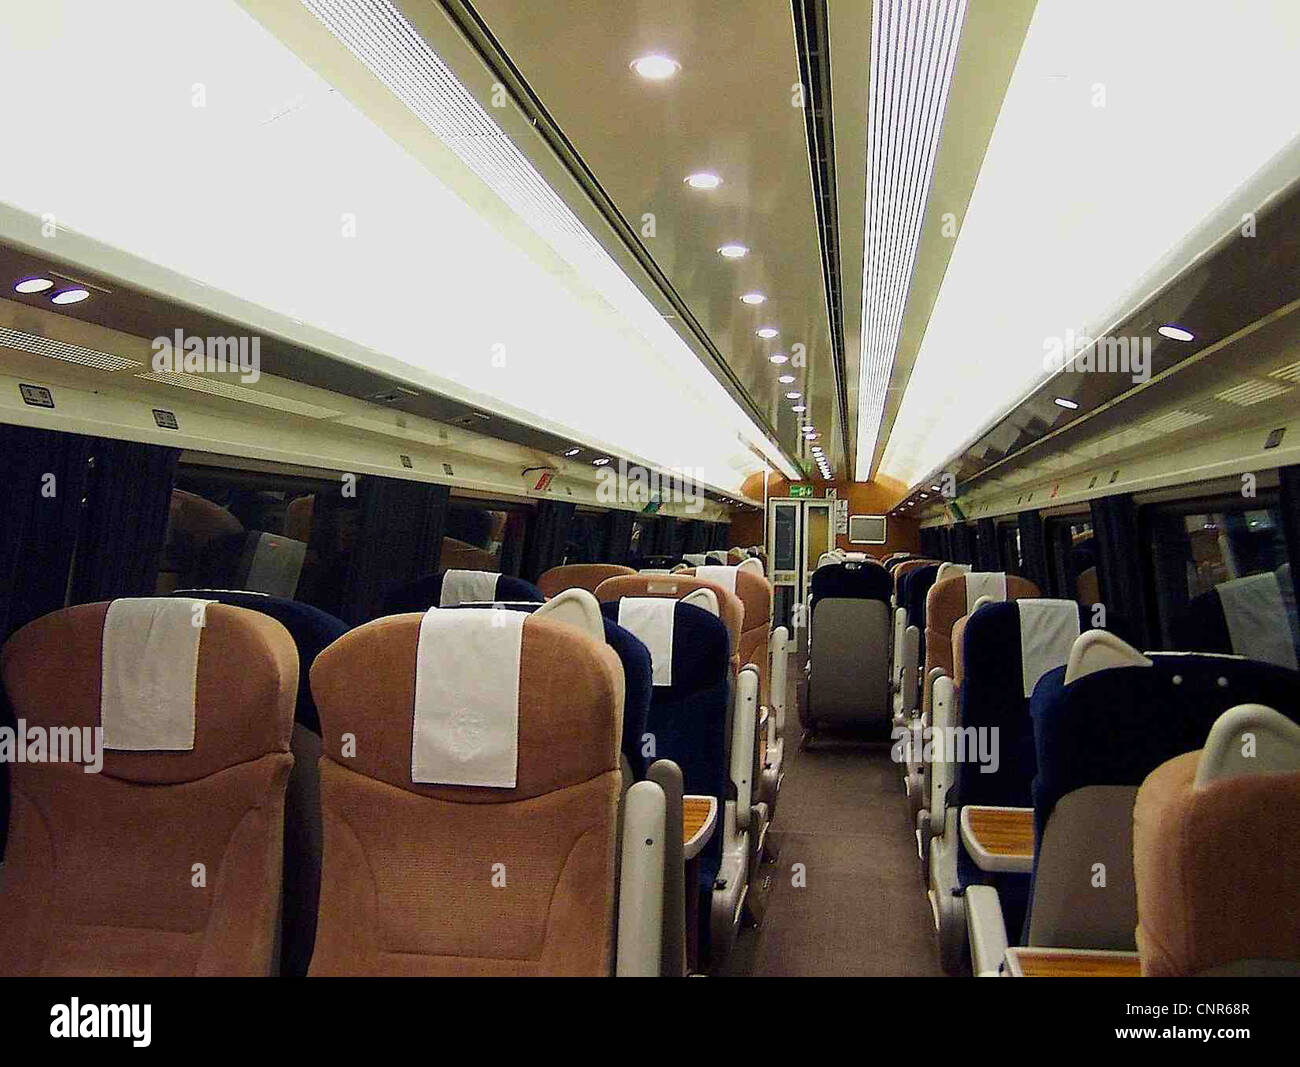 The interior of a refurbished GNER Mark IV FO vehicle. - Stock Image